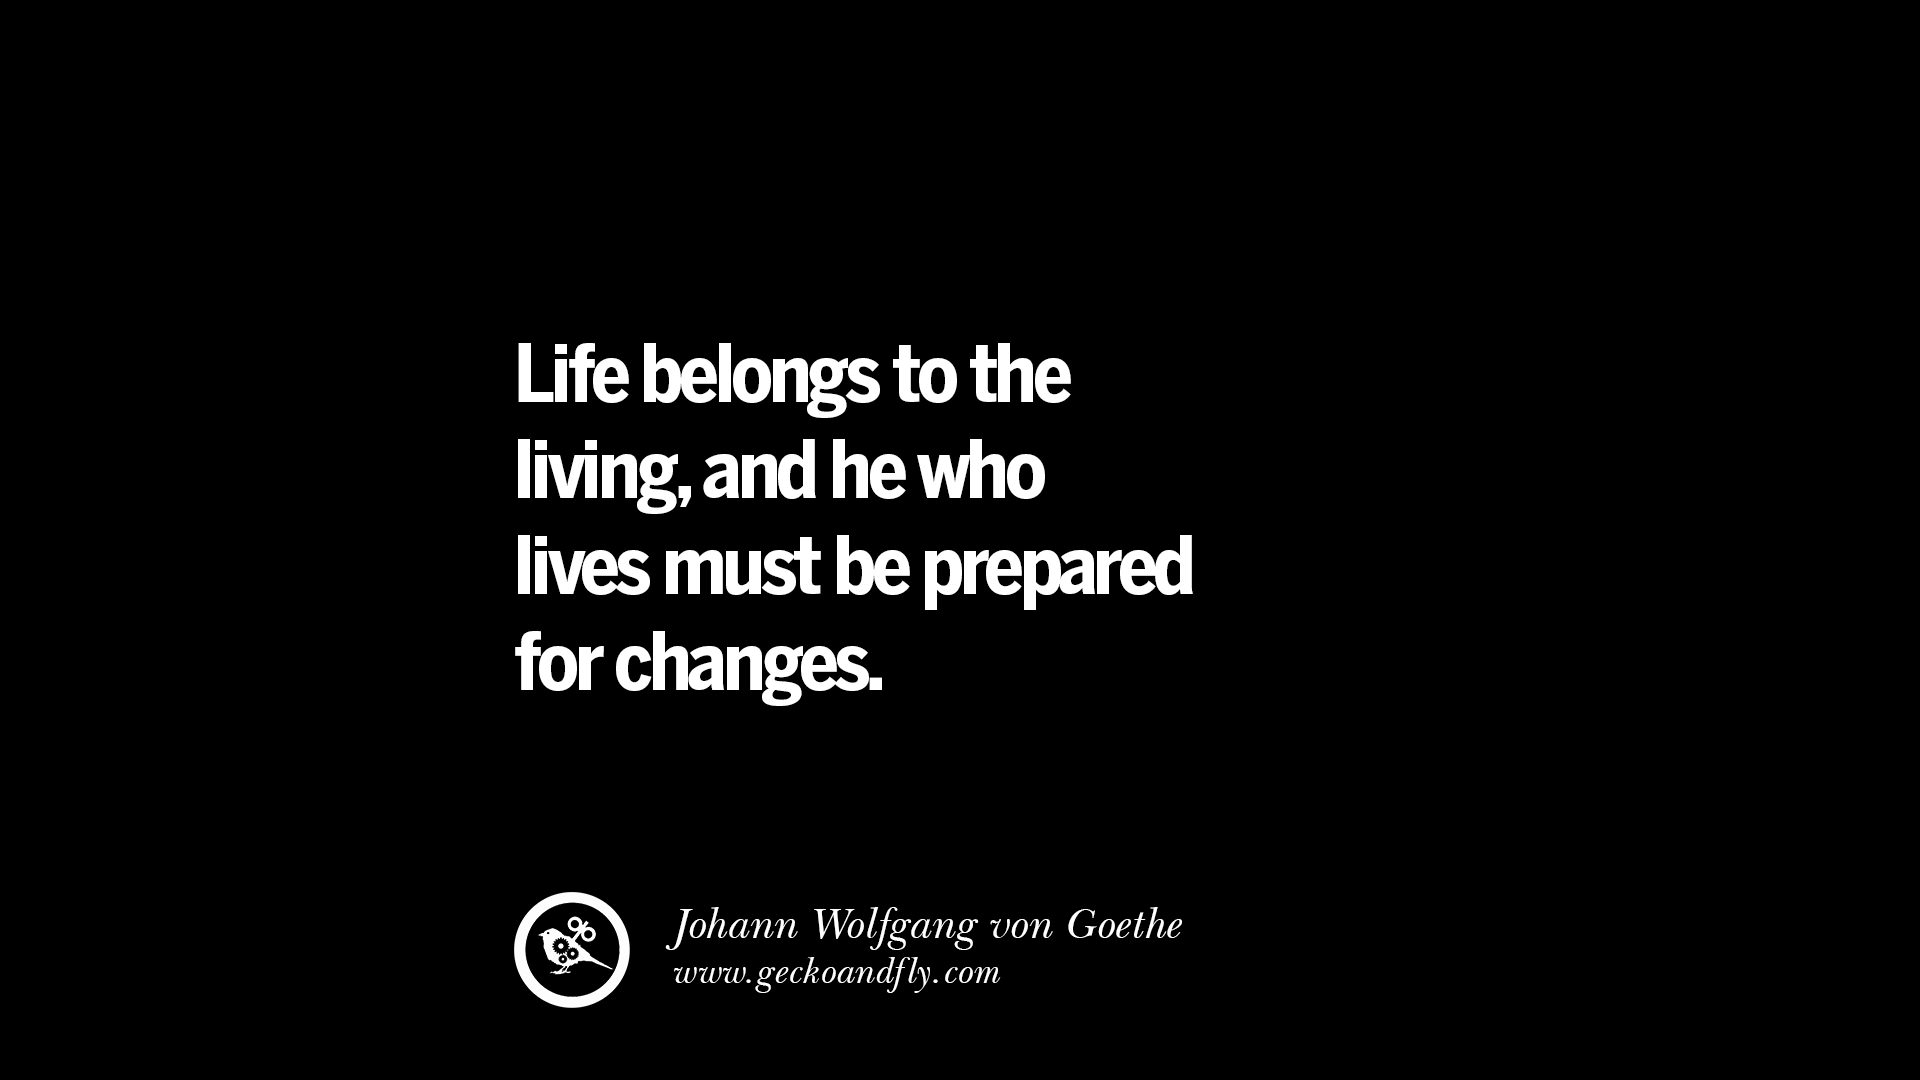 Life belongs to the living and he who lives must be prepared for changes johann wolfgang von goethe